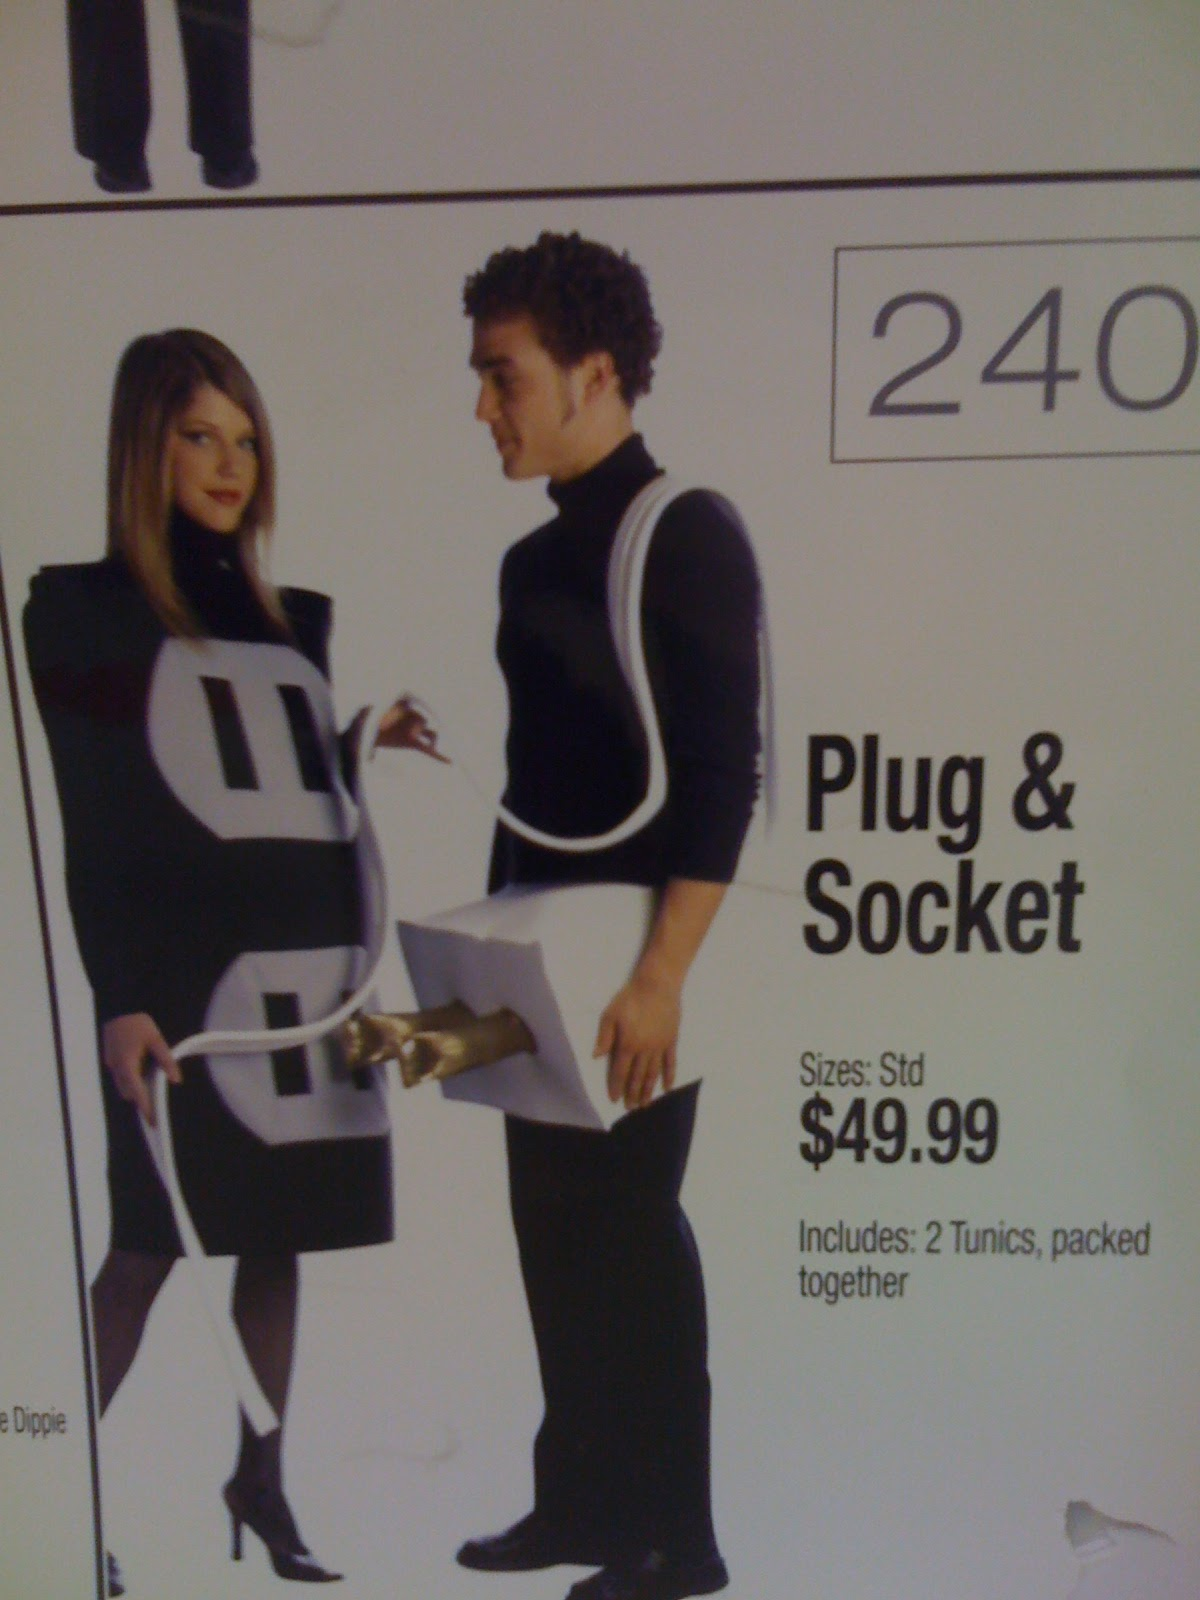 Halloween-Costume-Plug-Socket